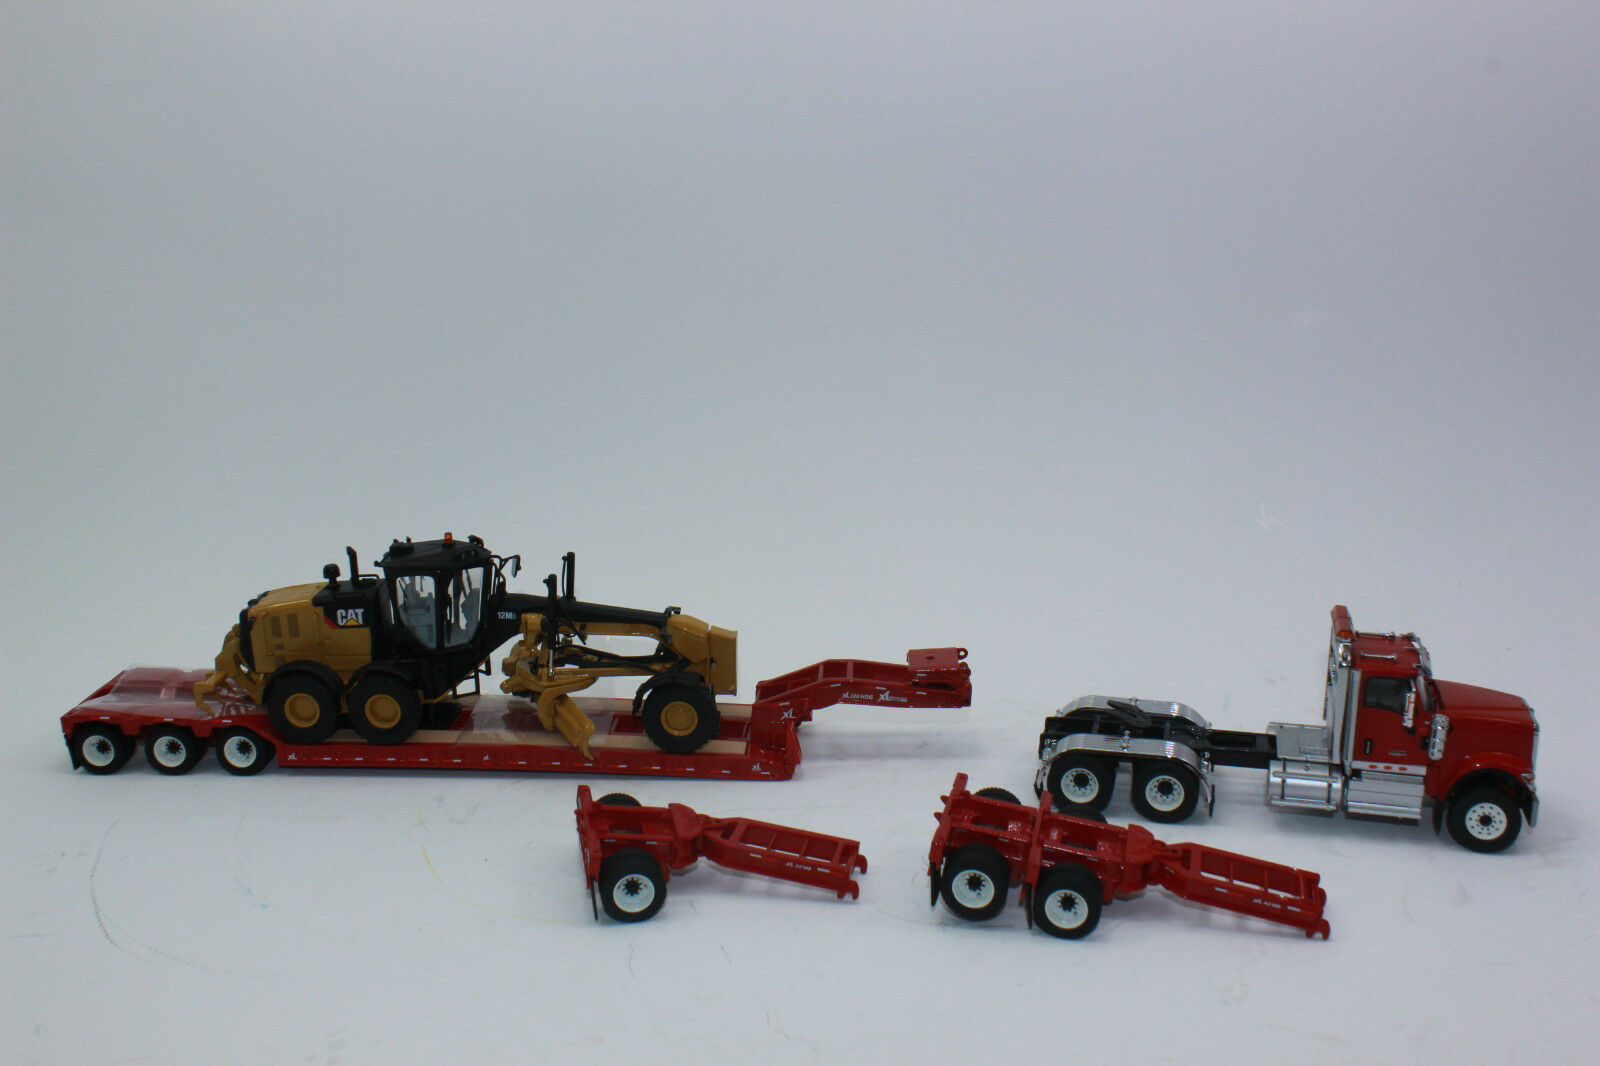 Diecast Masters 85598 hx520 Tractor + Low Loader + Cat 12m3 1 50 New in Original Box